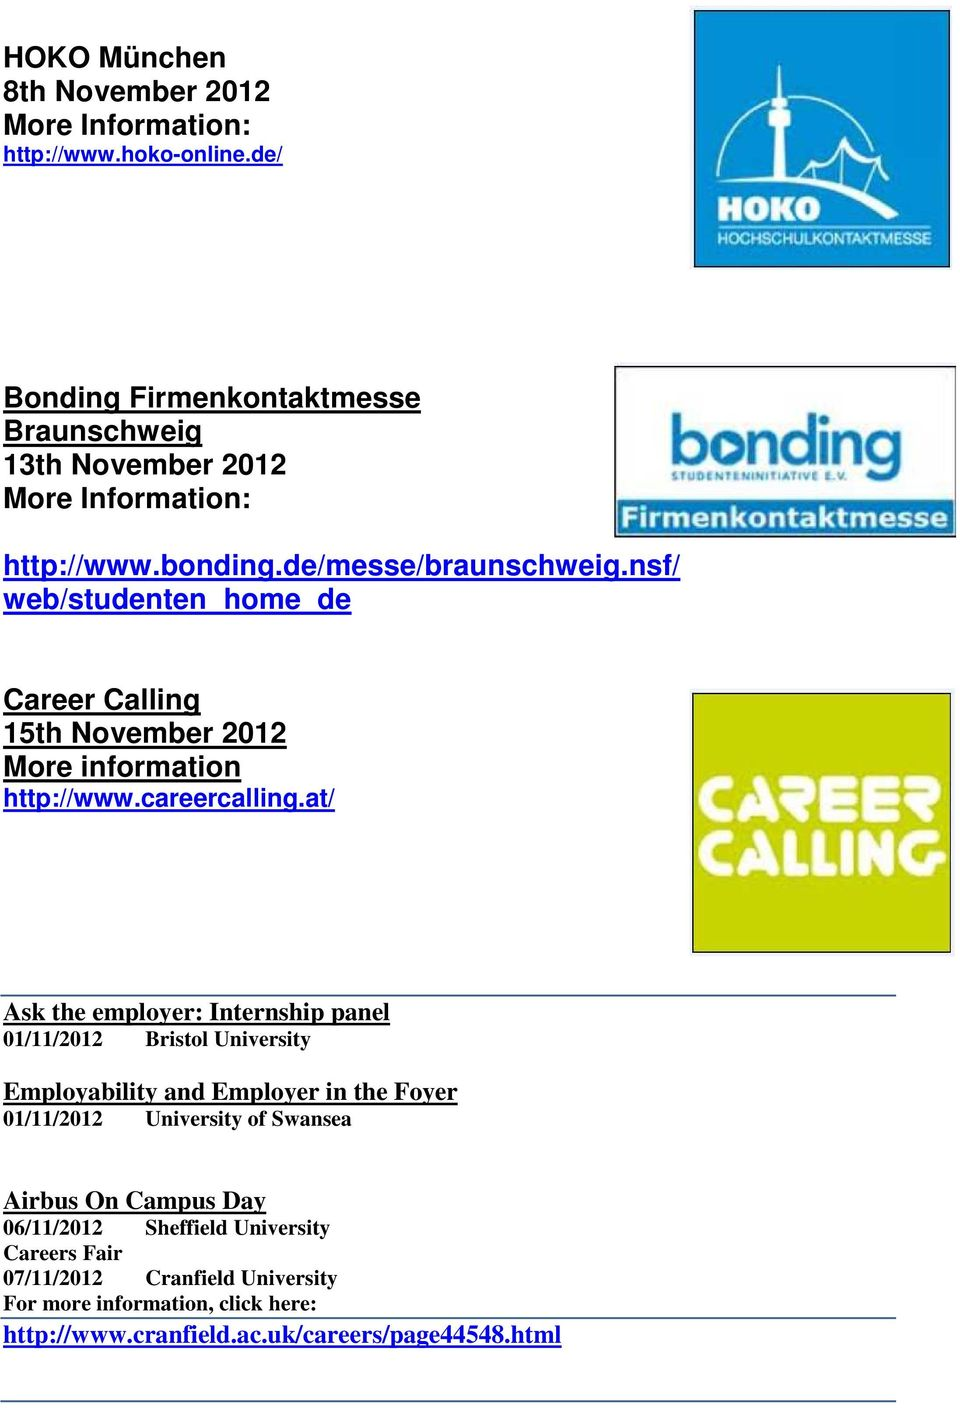 nsf/ web/studenten_home_de Career Calling 15th November 2012 More information http://www.careercalling.